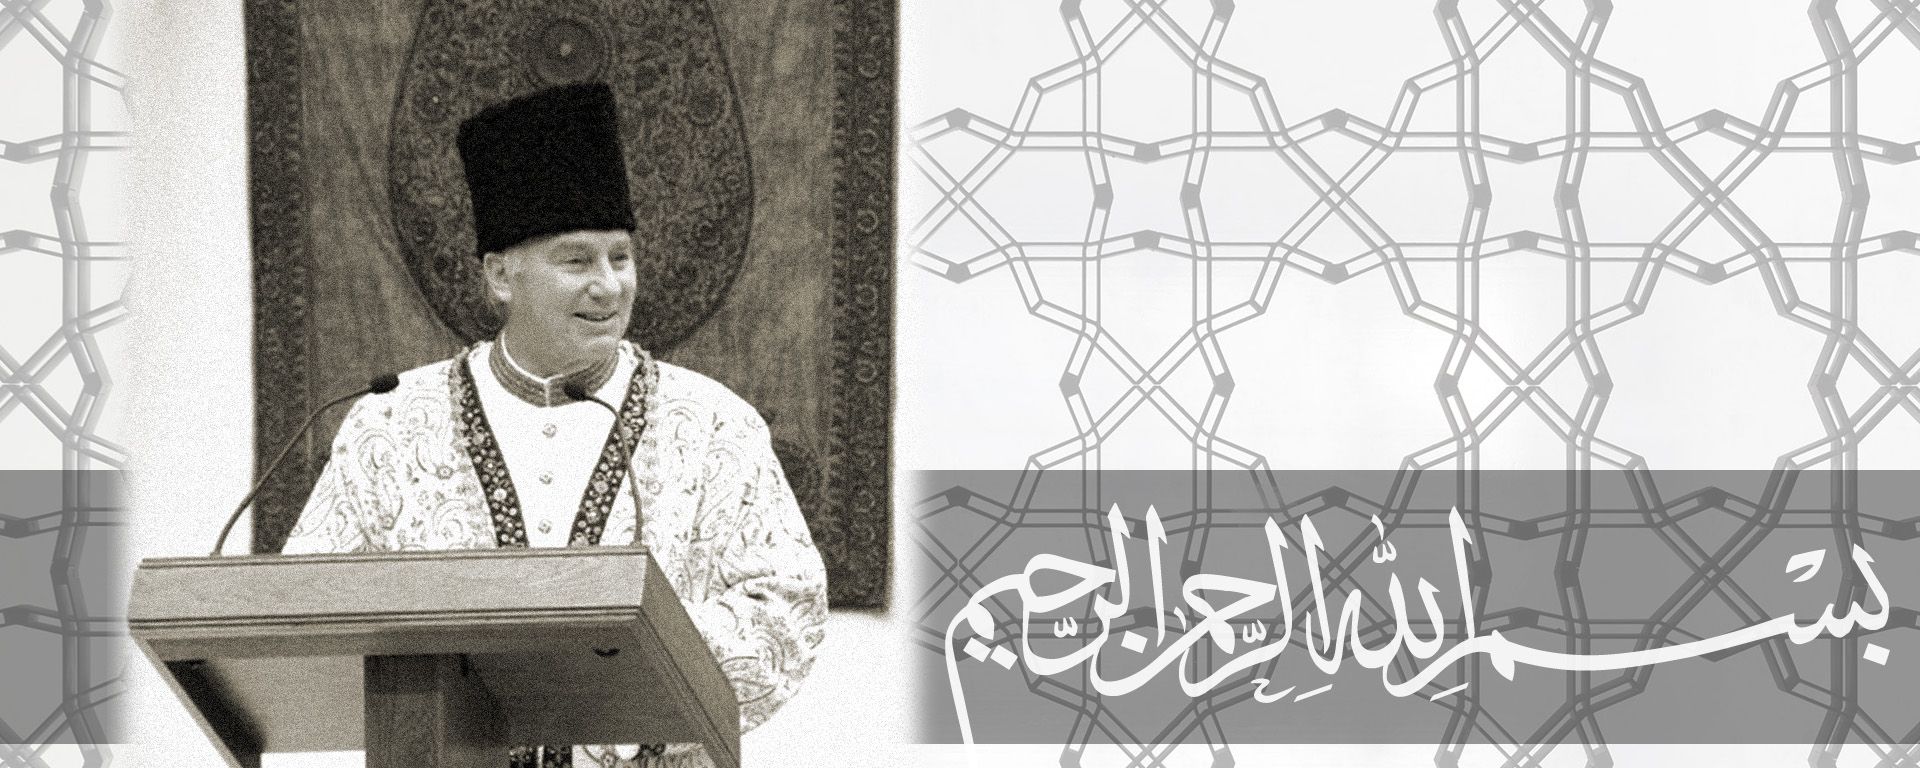 Image: Geometry, Aga Khan Museum (Permitted use); Image: Mawlana Hazar Imam, theismaili.org (Permitted use, Bill C-11, Section 29.21 http://bit.ly/1yRu6UZ); Image: Bismillah ir-Rahman ir-Rahim calligraphy, worldofcalligraphy.com (Permitted use)